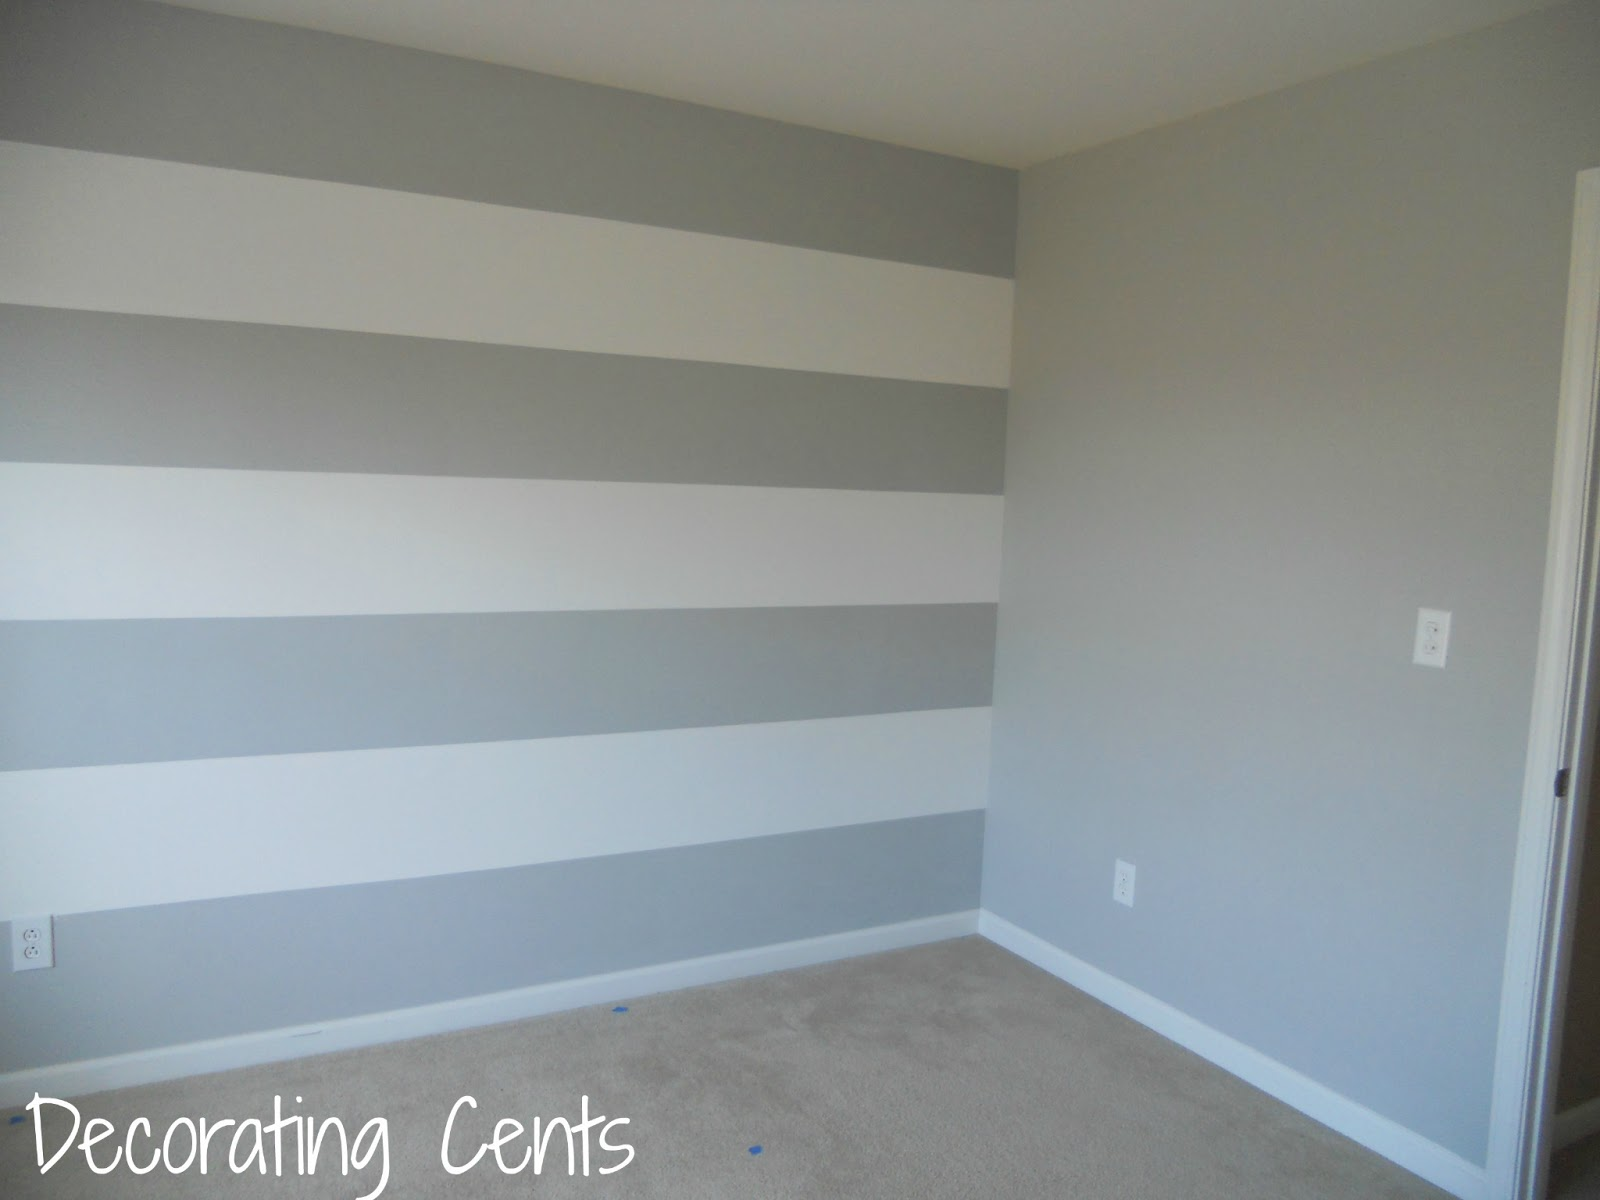 Decorating cents painting a striped wall for Painting stripes on walls